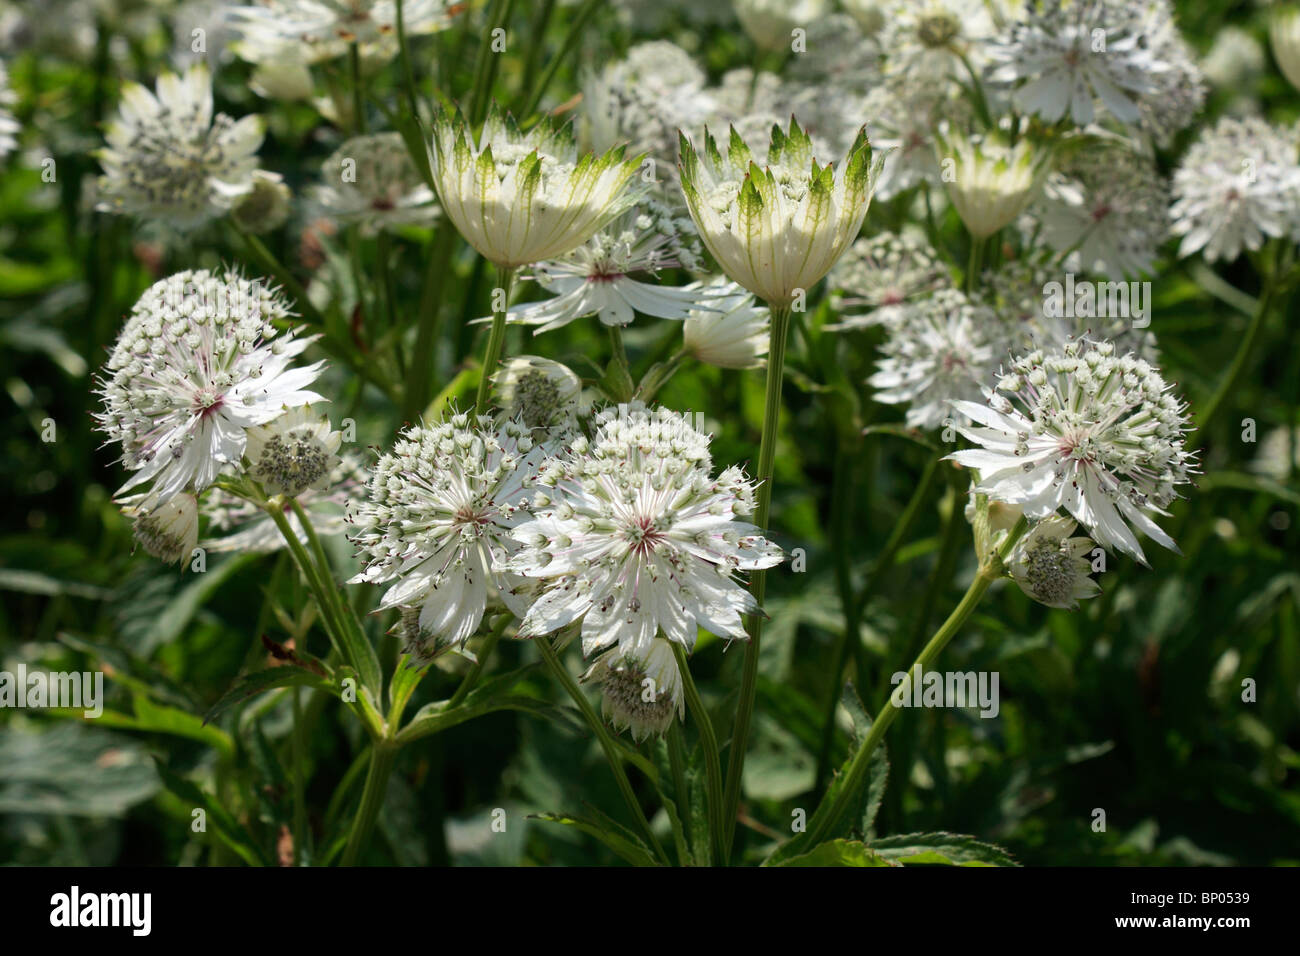 White astrantia flowers stock photos white astrantia flowers stock white flowers of astrantia major surrey england uk stock image mightylinksfo